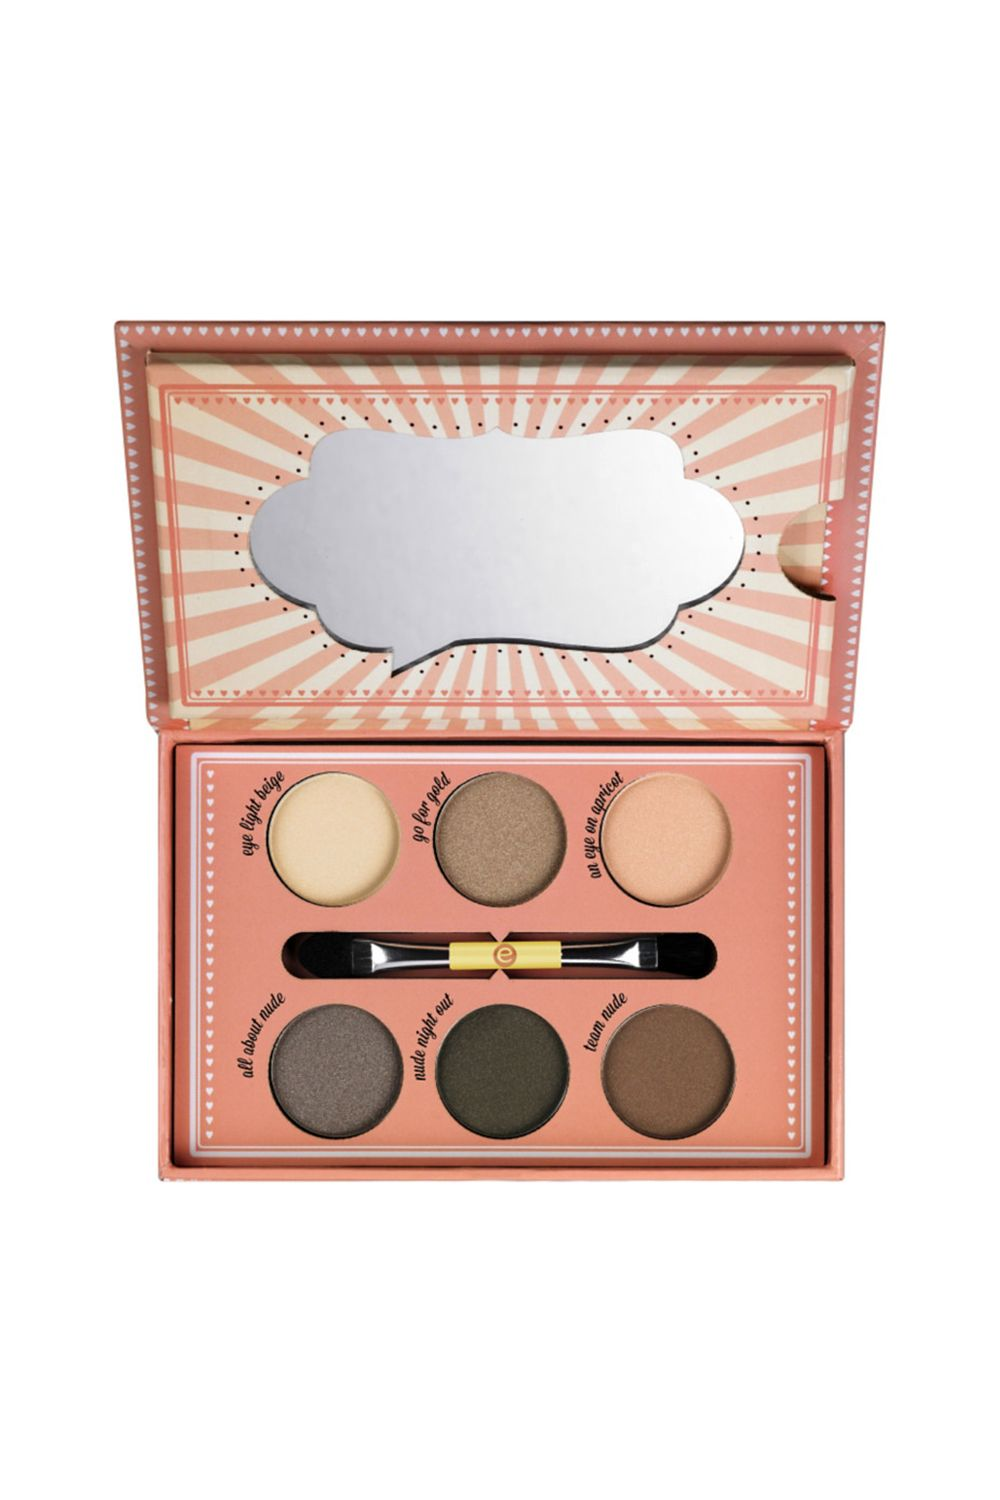 "<p>With six beige-to-espresso shades, this ""nude"" shadow kit and its dual-ended brush&nbsp&#x3B;can&nbsp&#x3B;define the lids&nbsp&#x3B;on virtually any&nbsp&#x3B;skin color.&nbsp&#x3B;&nbsp&#x3B;</p><p><i data-redactor-tag=""i"">Essence How to Make Nude Eyes Palette, $9.99</i></p><p><strong data-redactor-tag=""strong"">BUY IT: <a href=""http://www.ulta.com/how-make-nude-eyes-palette?productId=xlsImpprod11001381"">ulta.com</a>.&nbsp&#x3B;</strong></p>"